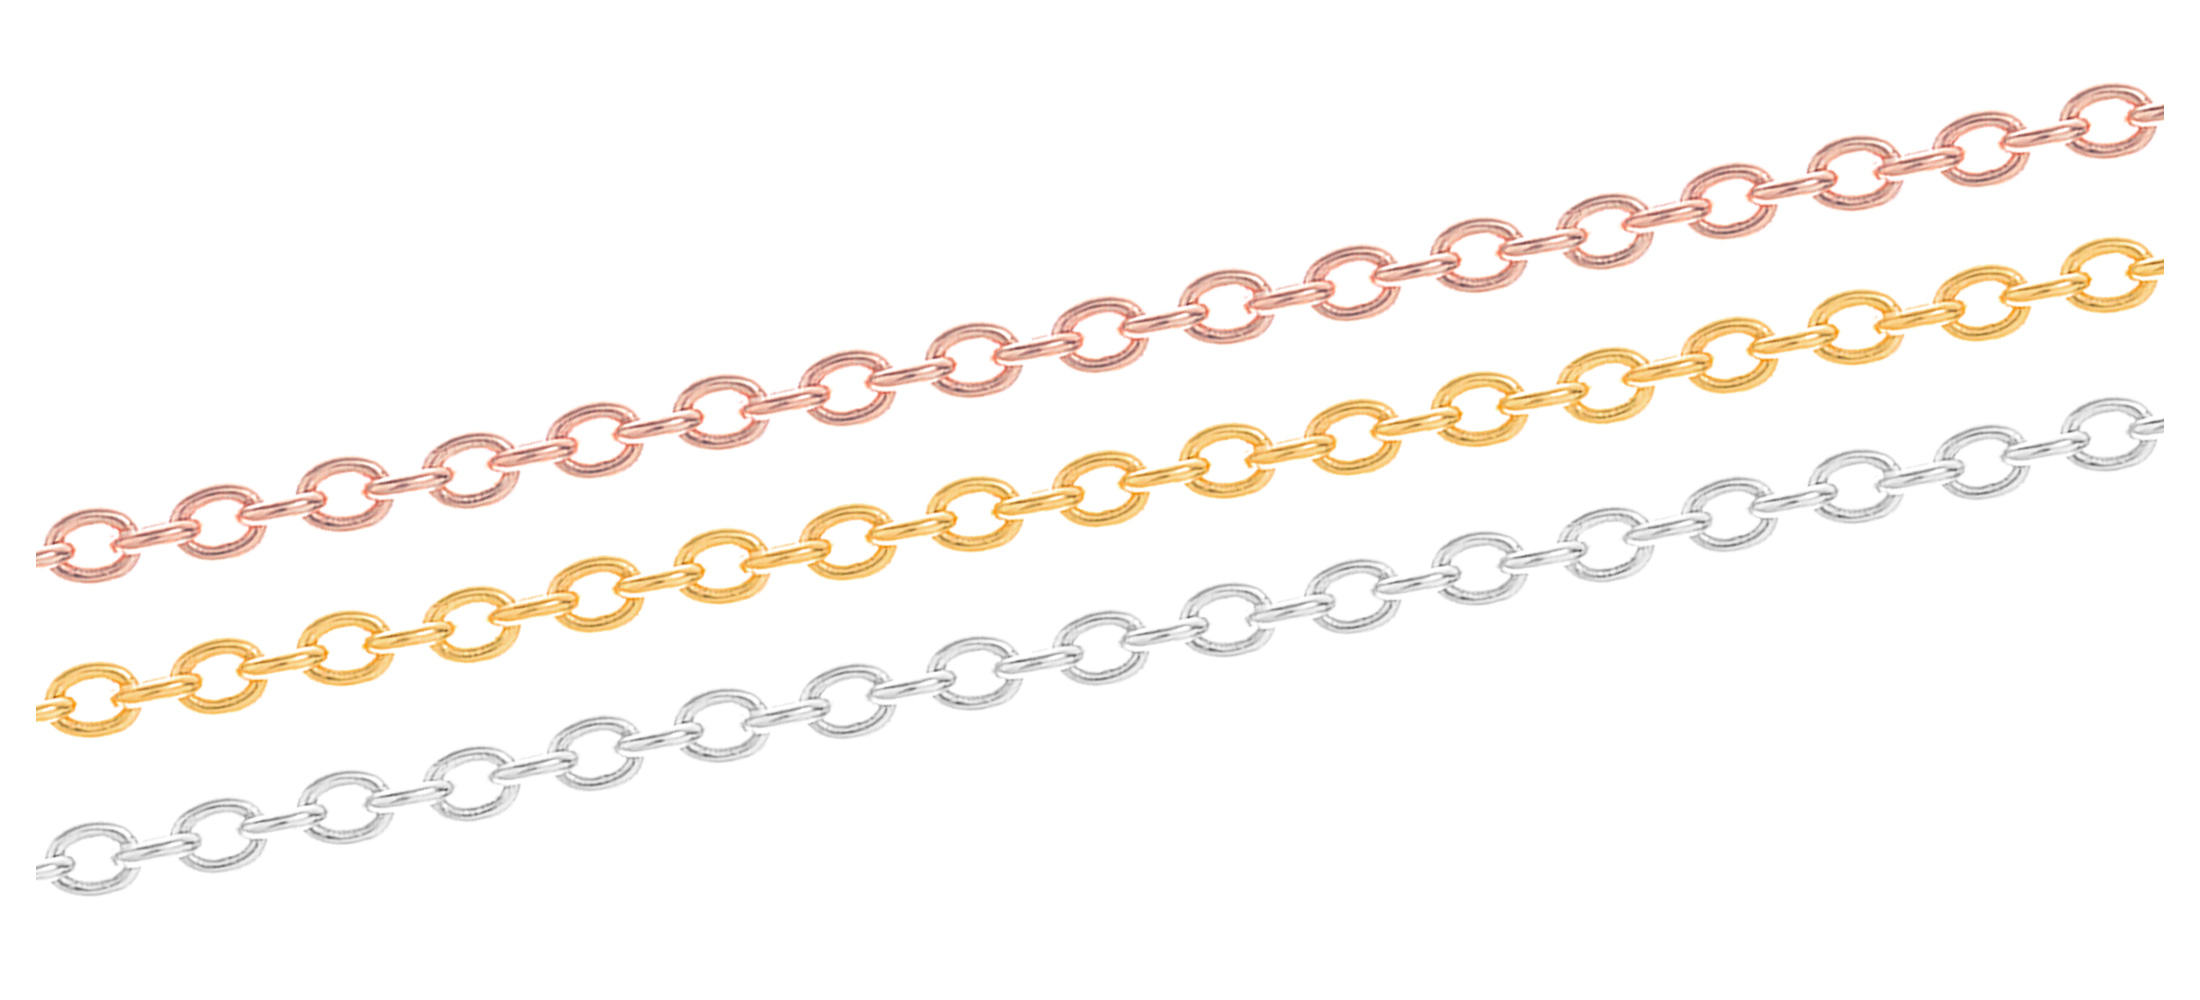 Colour of necklace chain *